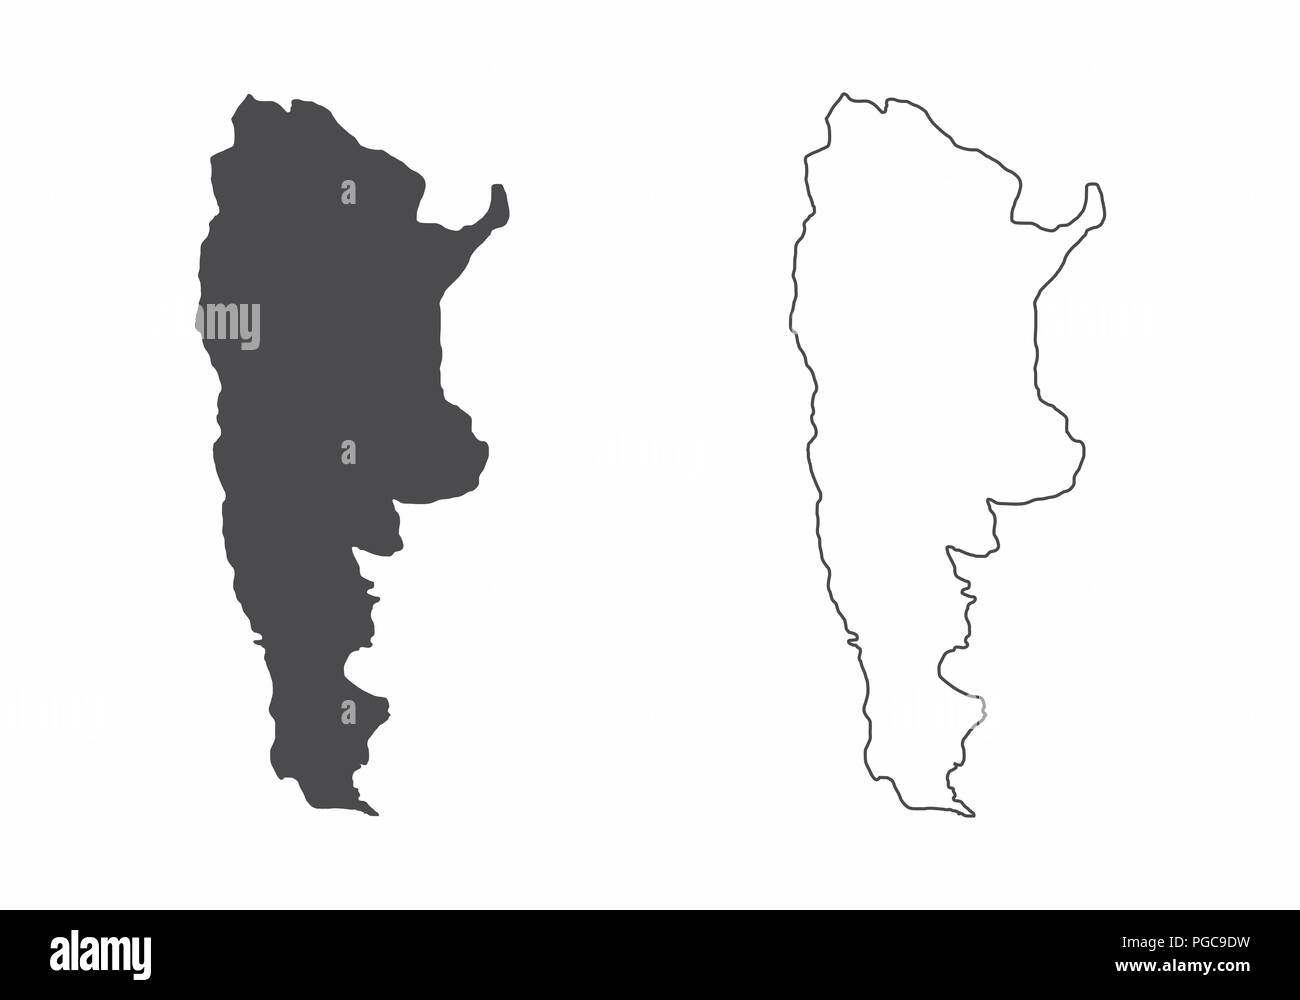 Maps of Argentina - Stock Vector